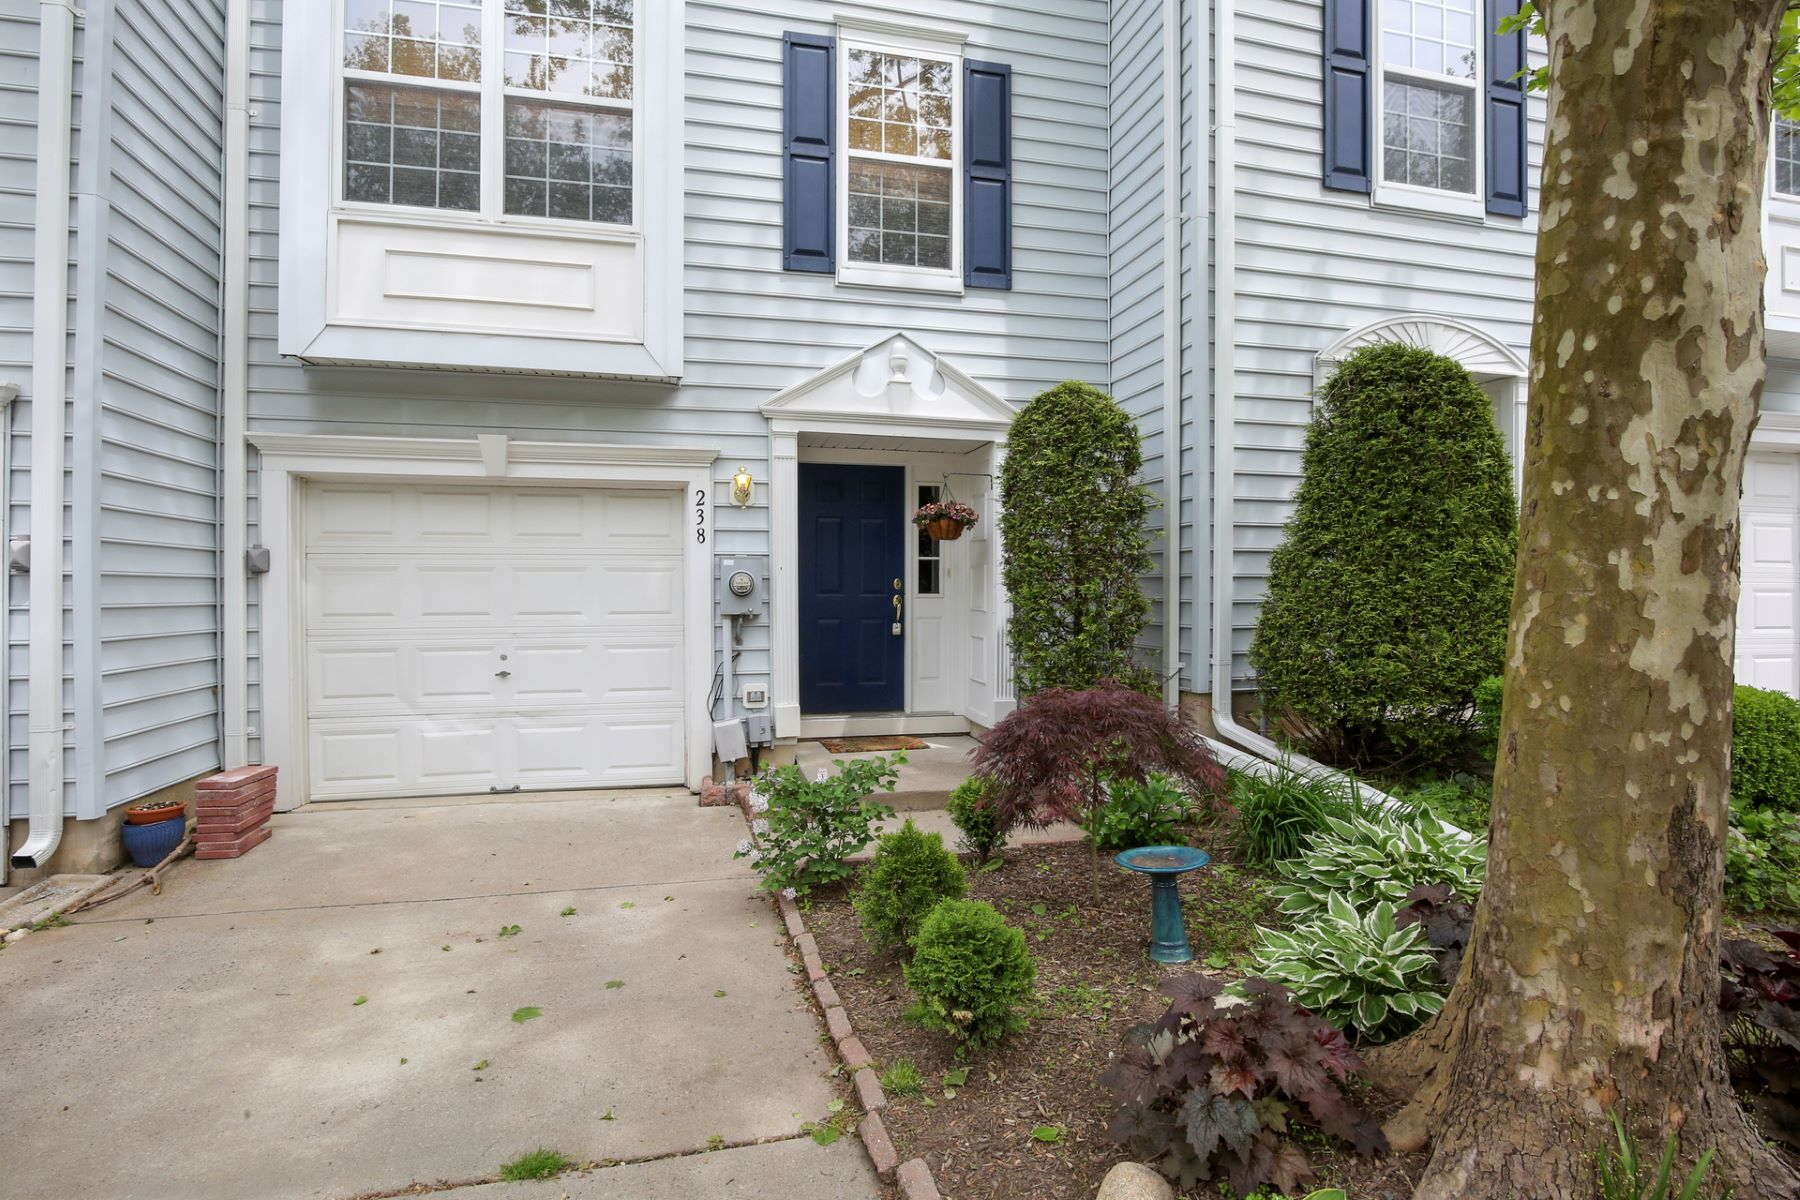 Easy Townhome With All the Perks of Princeton 238 William Livingston Court, Princeton, New Jersey 08540 États-Unis